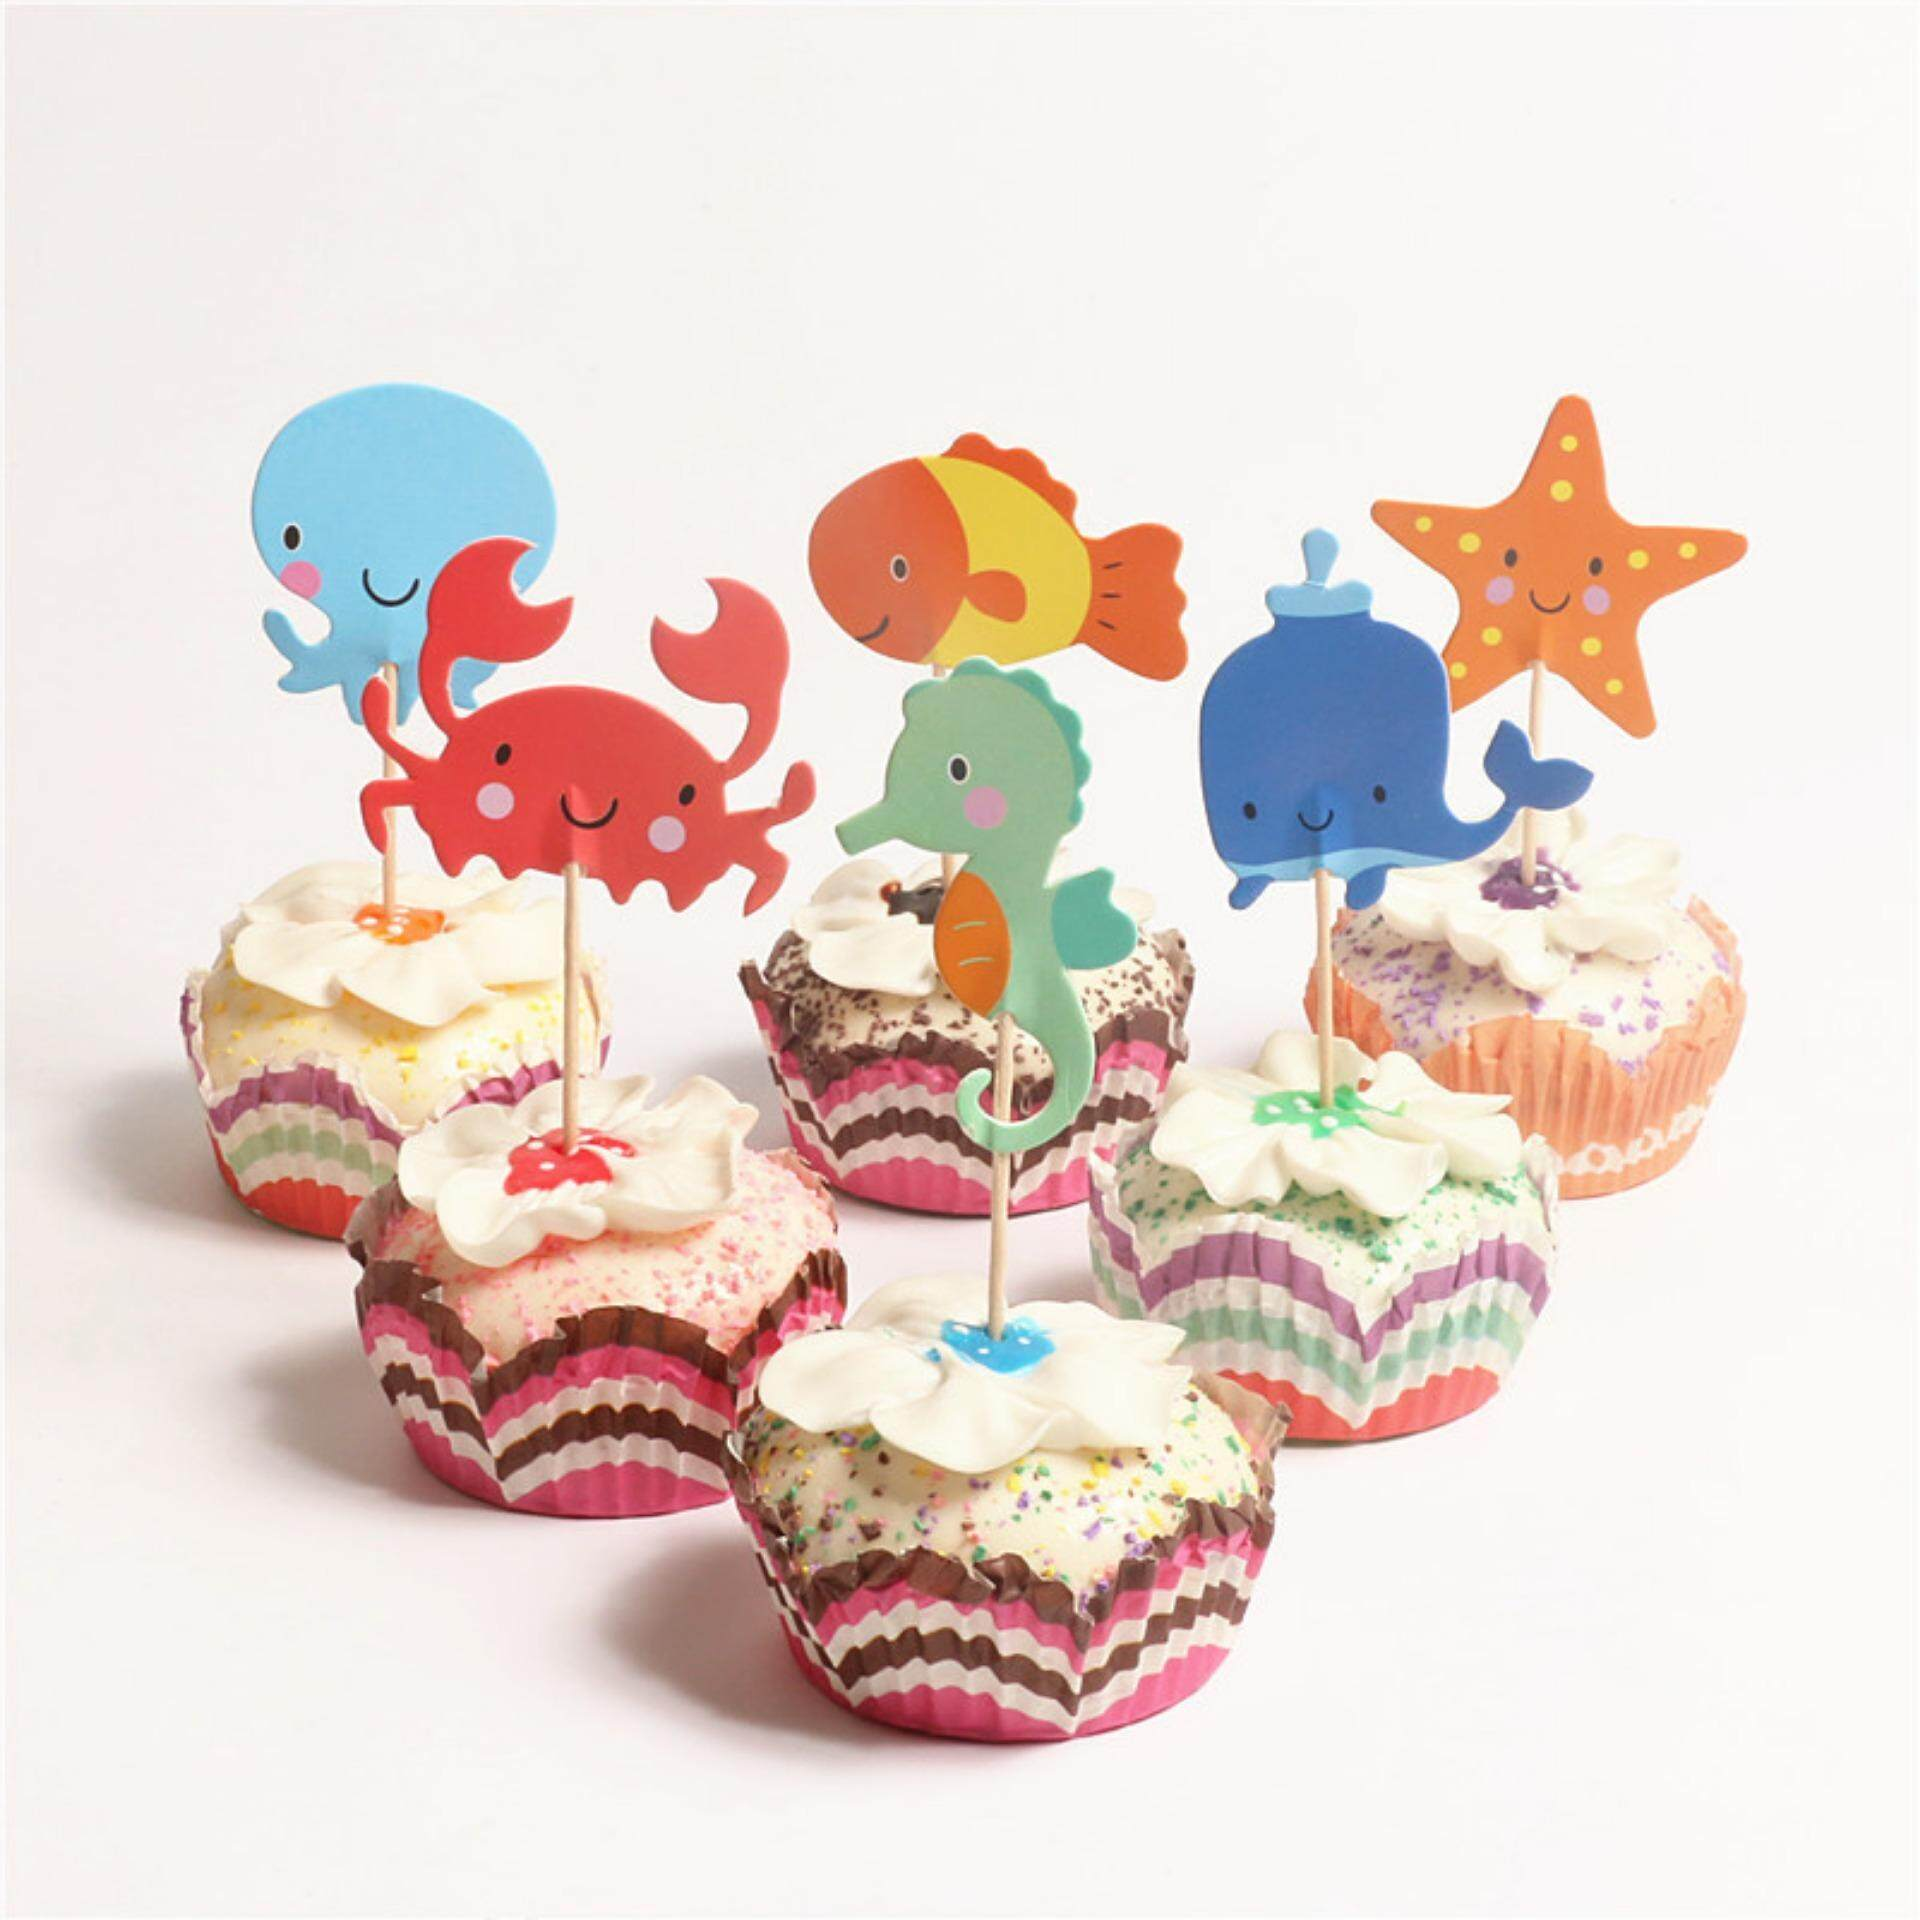 Veli Shy 24pcs Ocean Cupcake Toppers Whale Hippocampus Starfish Cake Picks Party Decorations - Intl By Veli Shy.